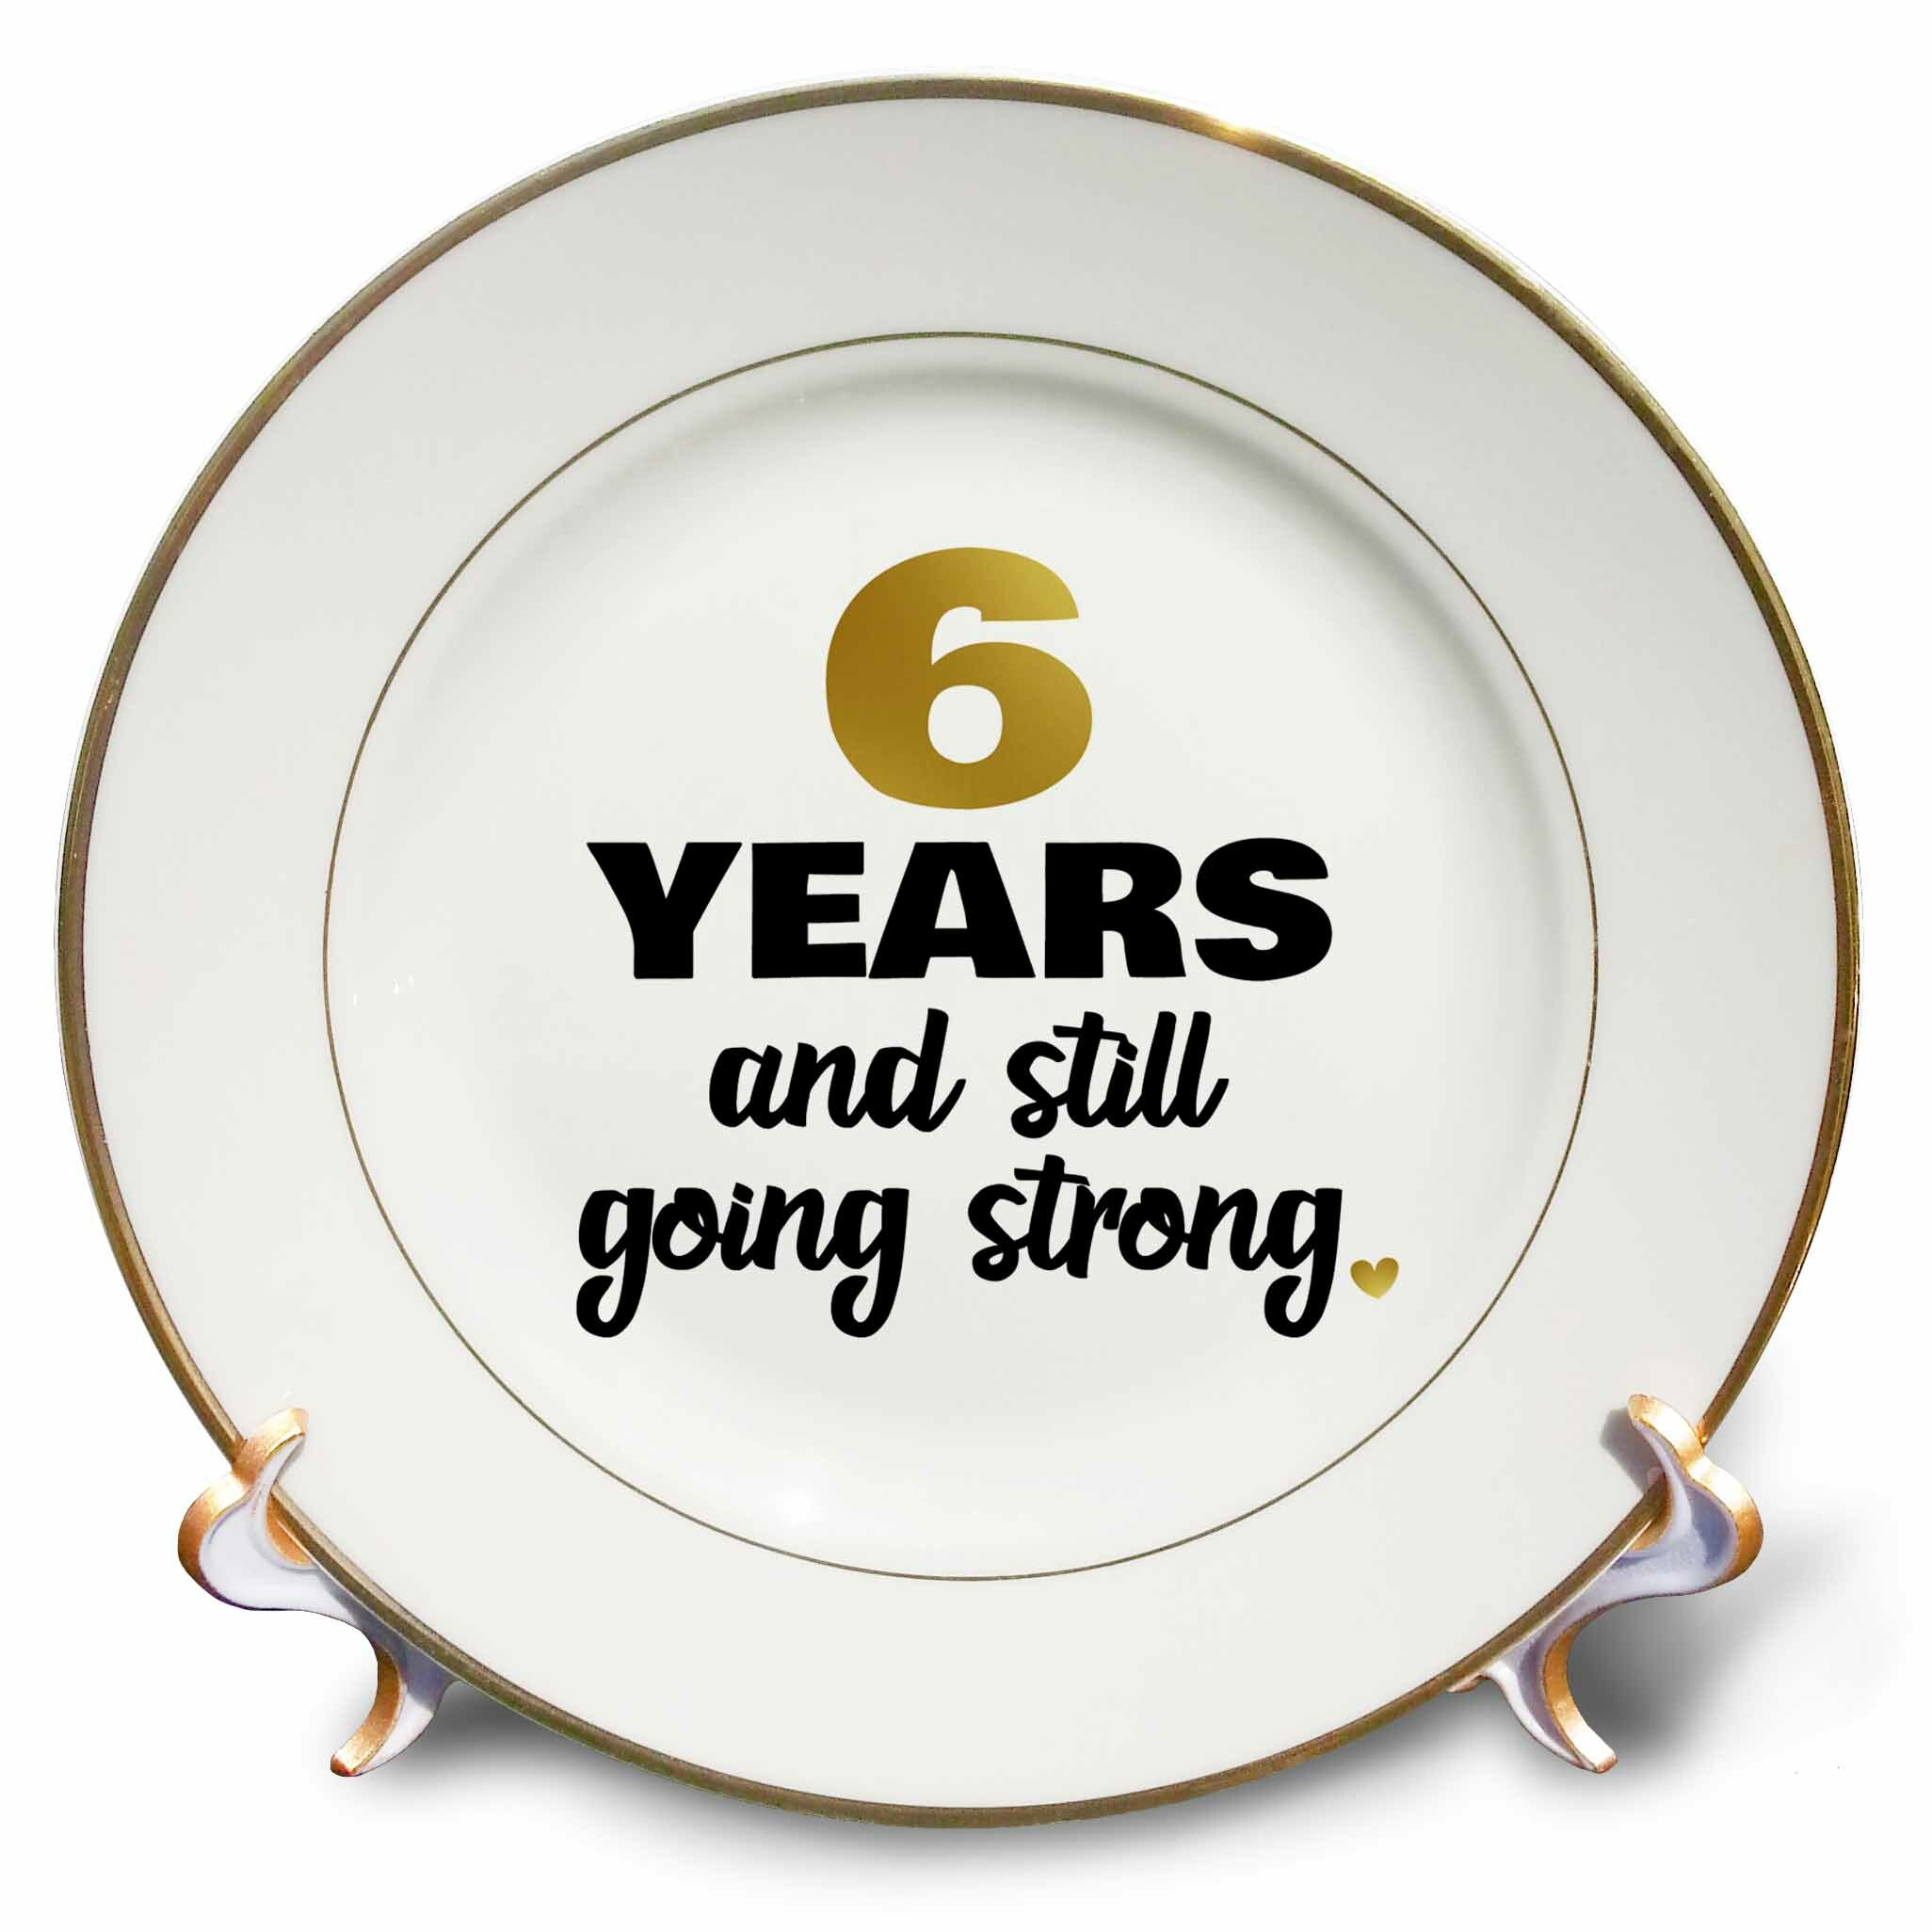 East Urban Home 6 Year Anniversary Still Going Strong 6th Wedding Anniversary Gift Porcelain Decorative Plate Wayfair